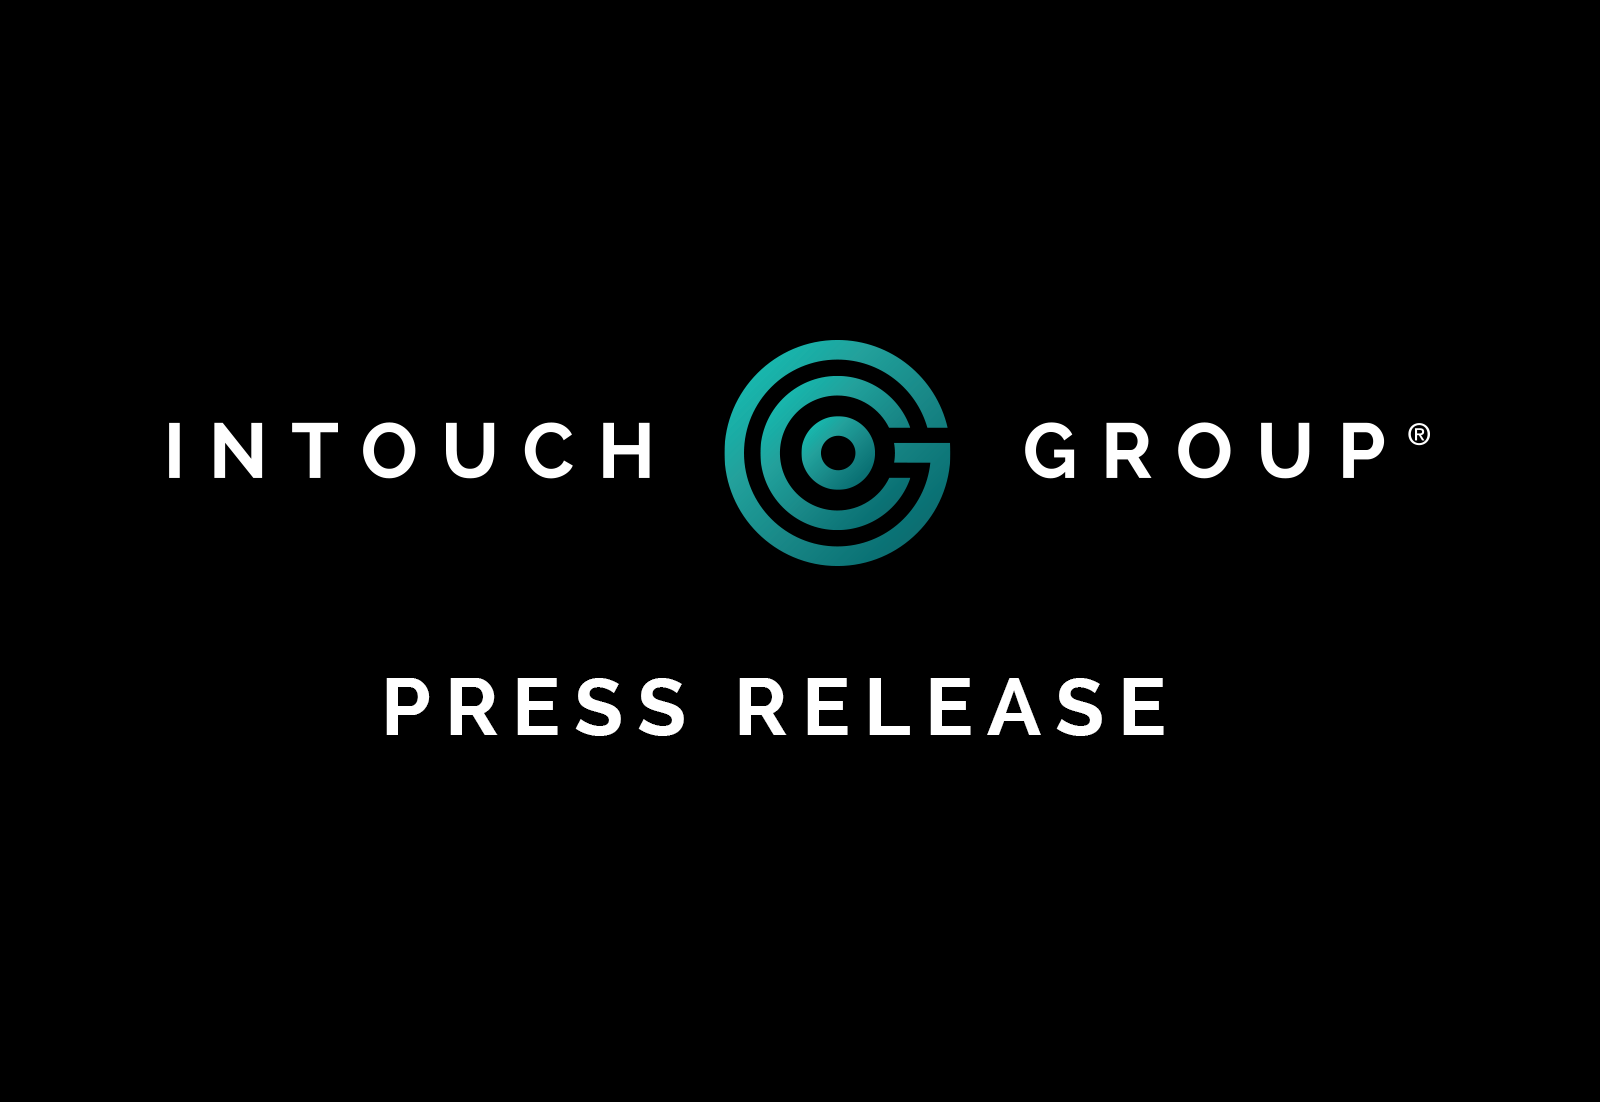 DHC Group and Intouch Group Publish Whitepaper on the Effect of COVID-19  on Pharmaceutical Marketing